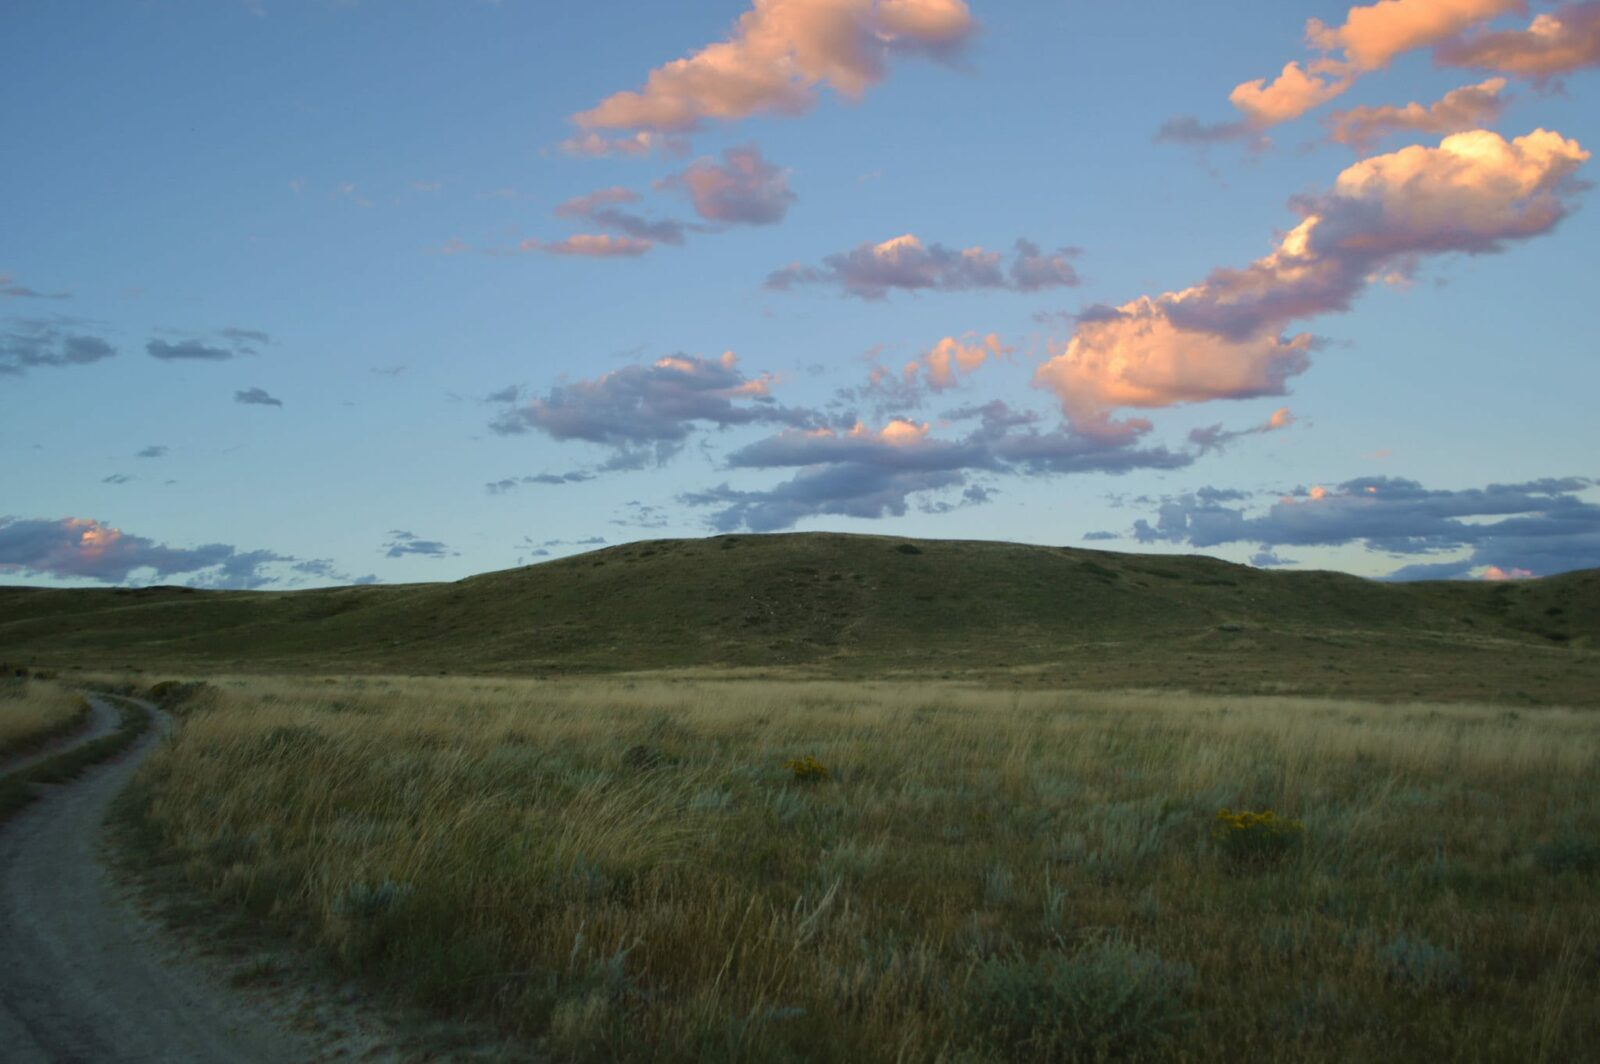 Image of Soapstone Prairie Natural Area in Fort Collings, Colorado